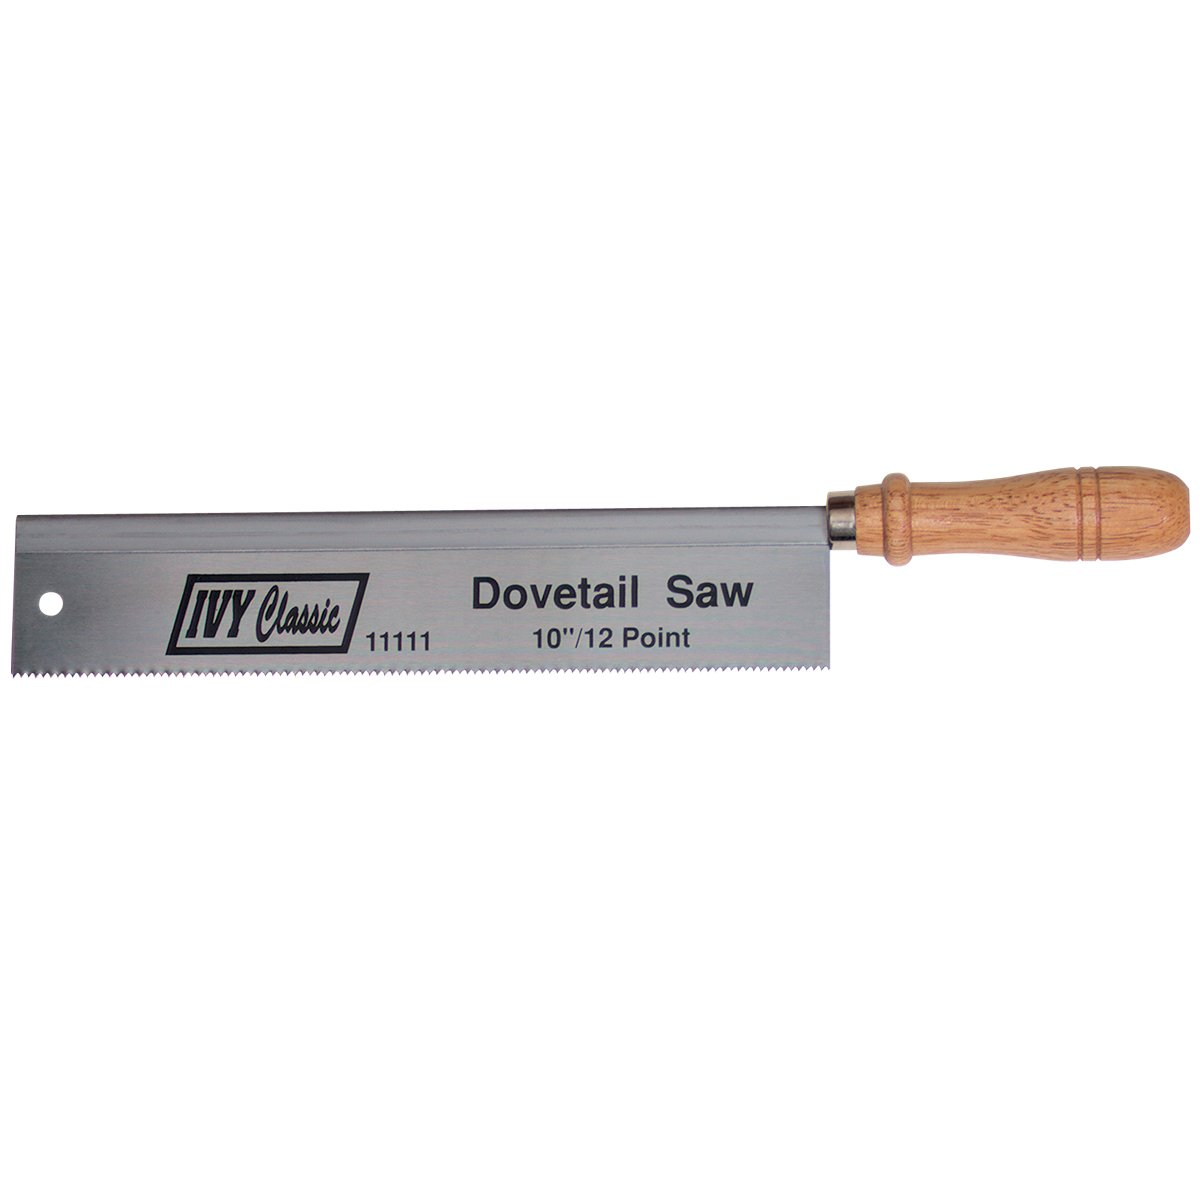 Ivy Classic Dovetail Saw